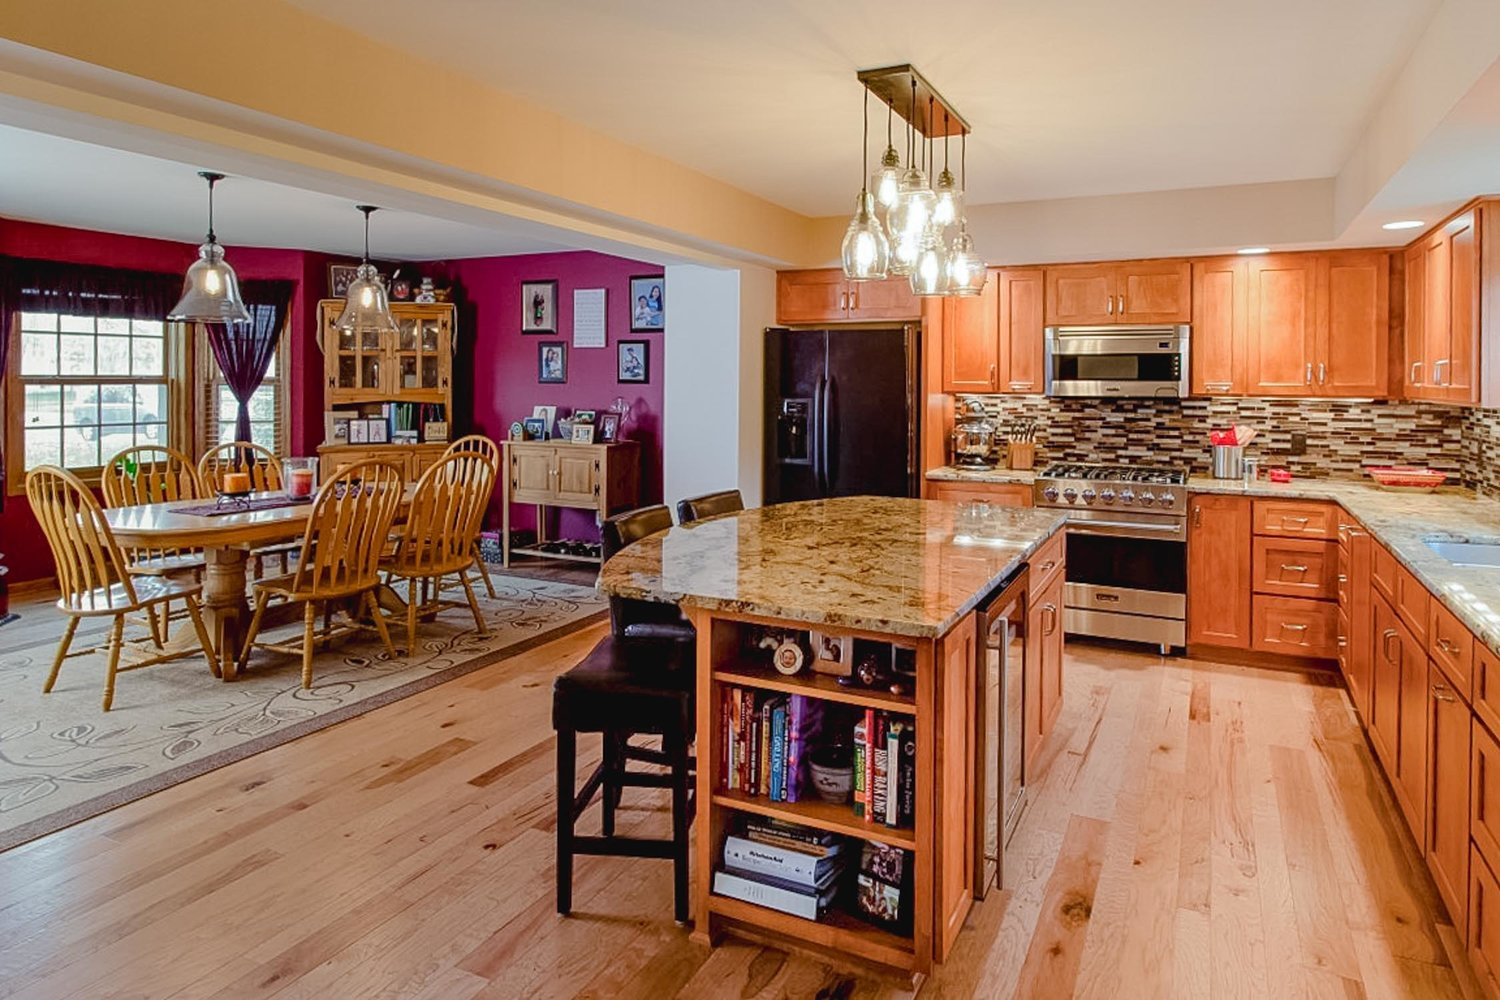 - A major loadbearing wall removal in this colonial home opened the space to make a larger kitchen with a usable dining room.